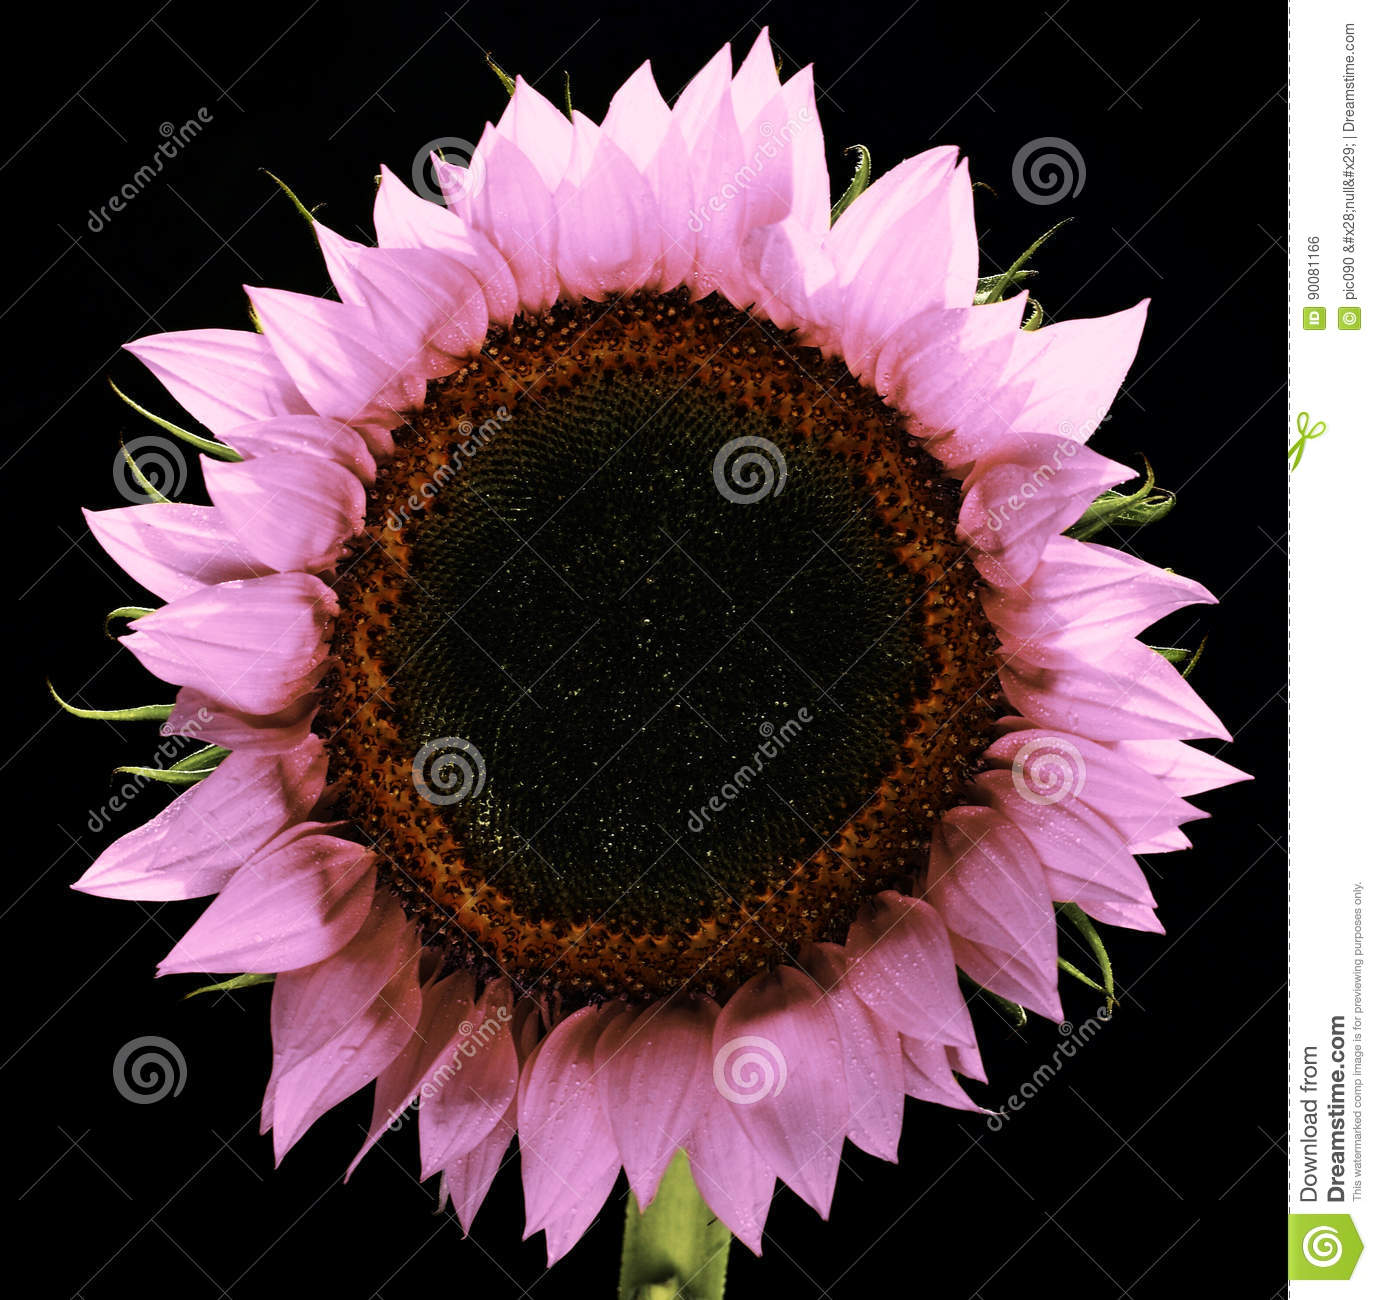 Pink Sunflower Isolated Royalty Free Stock Image